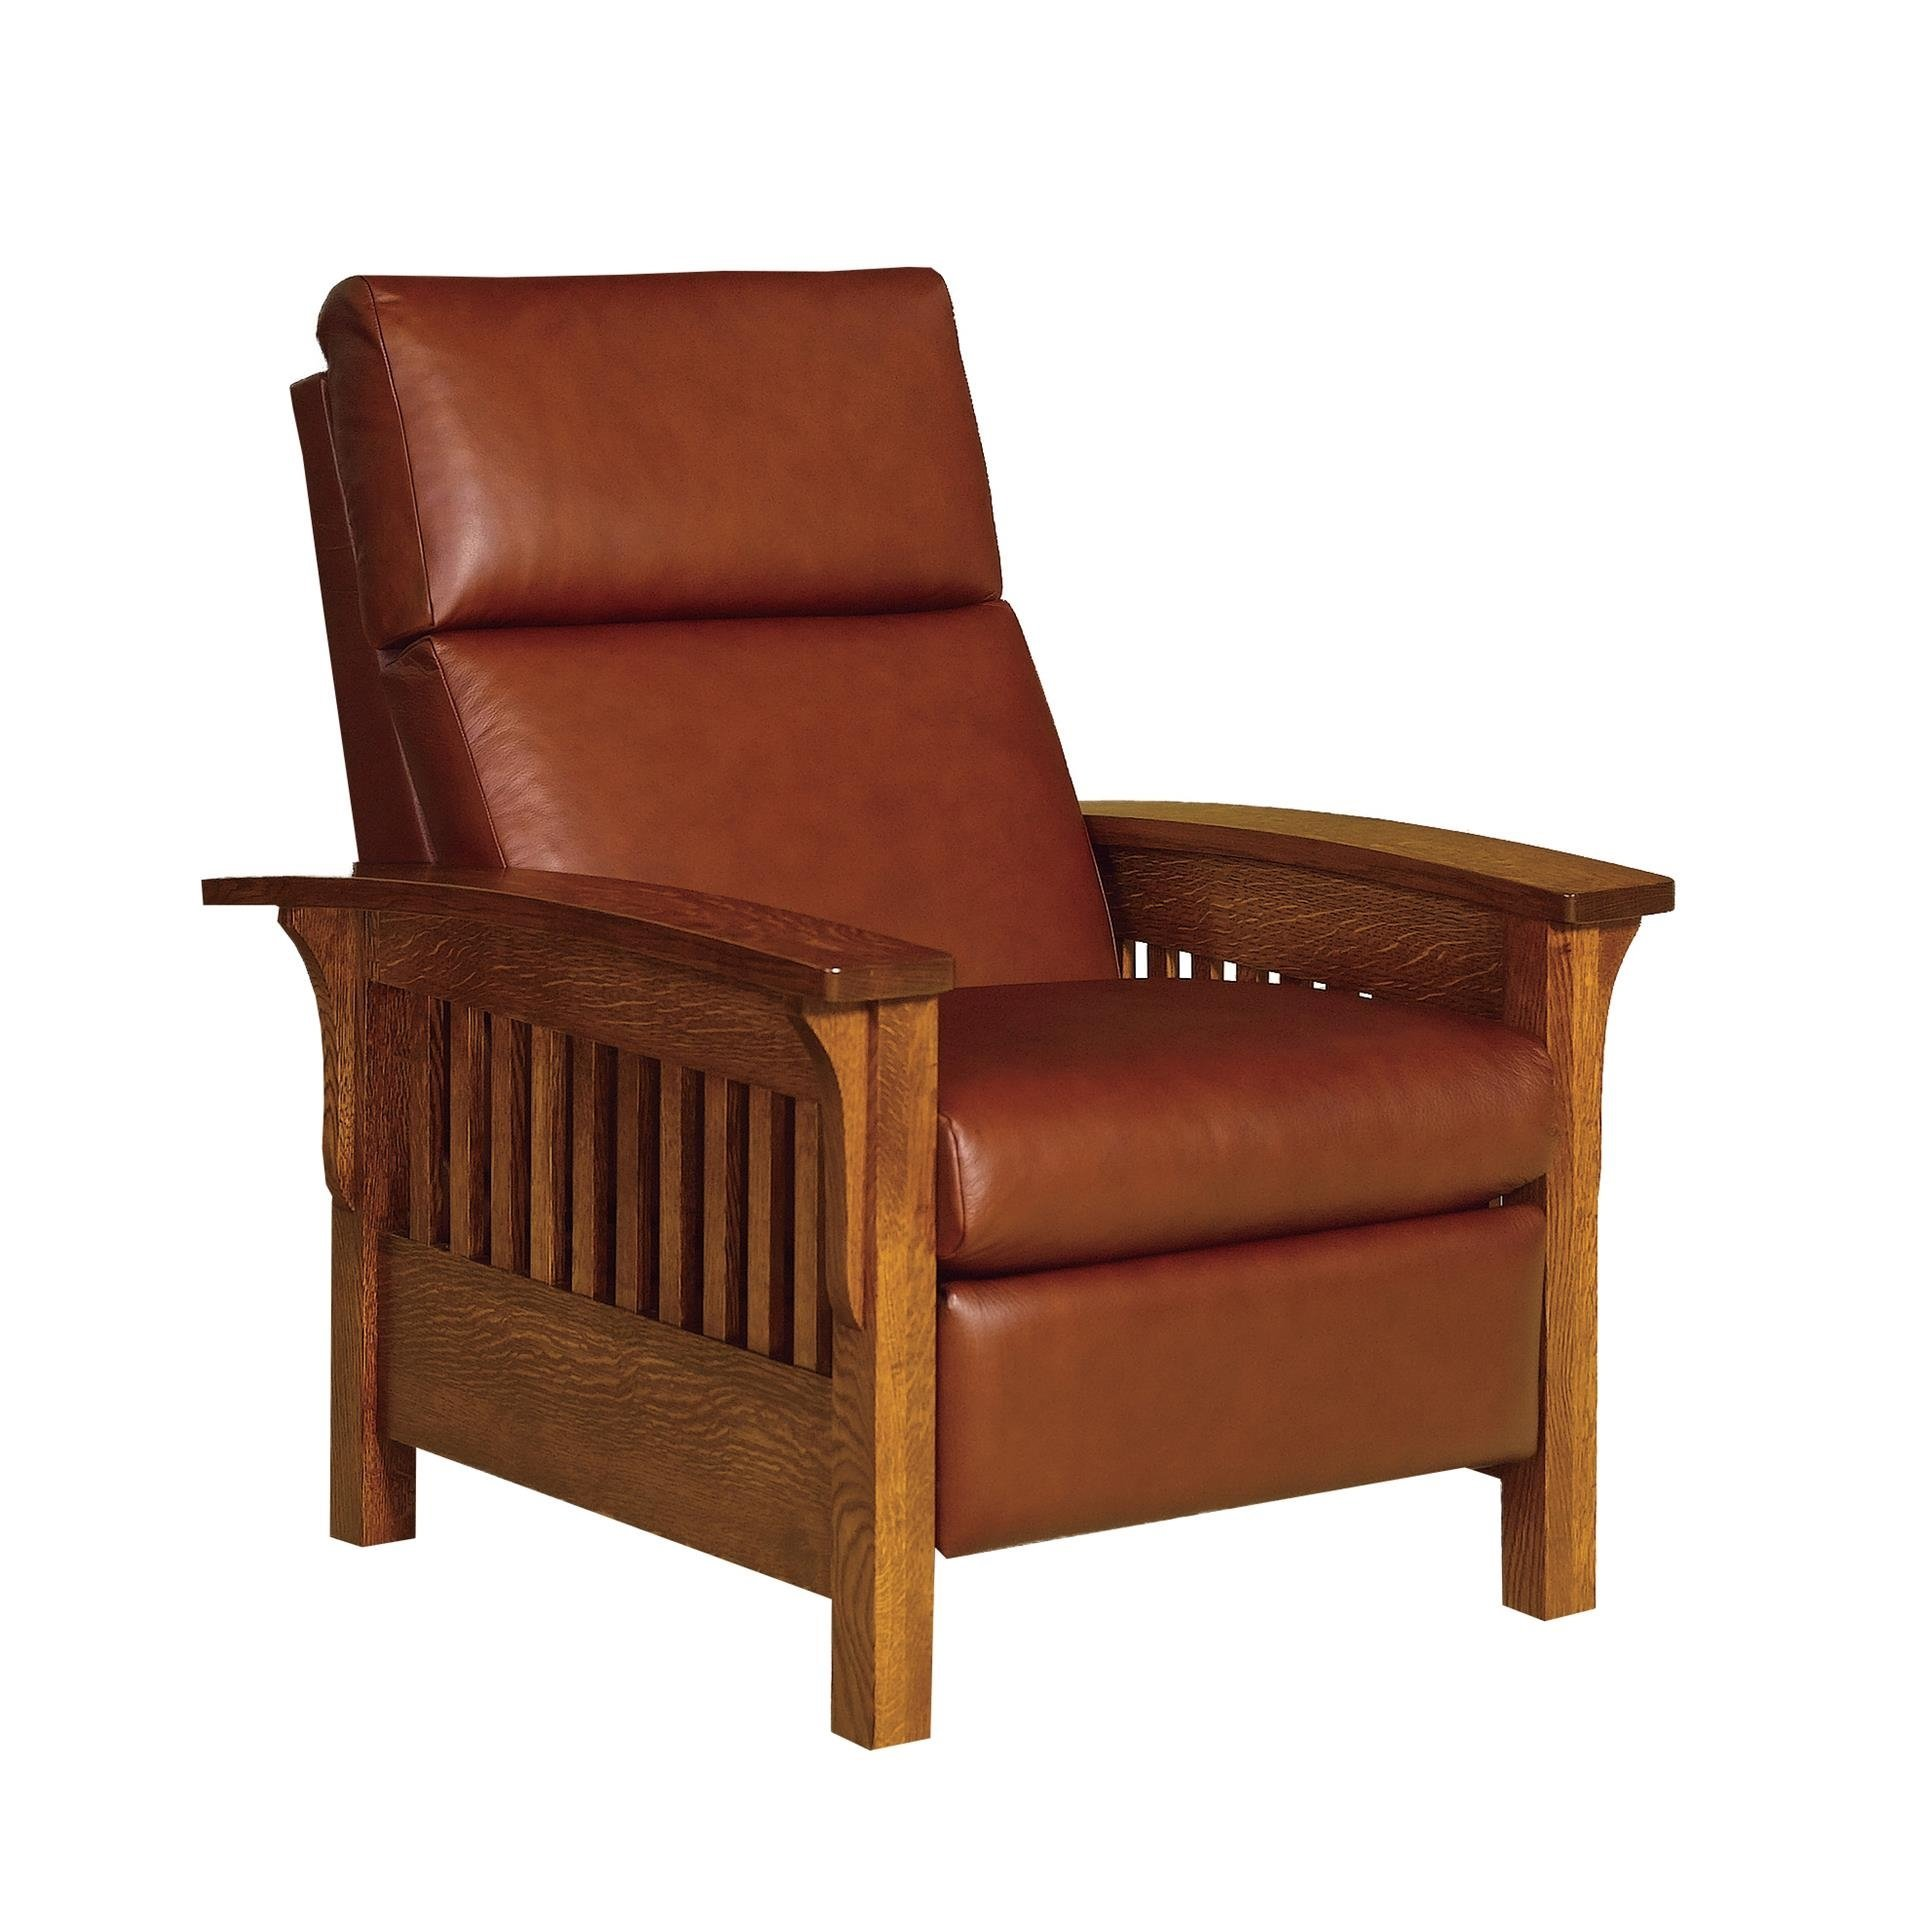 heartland slat mission recliner